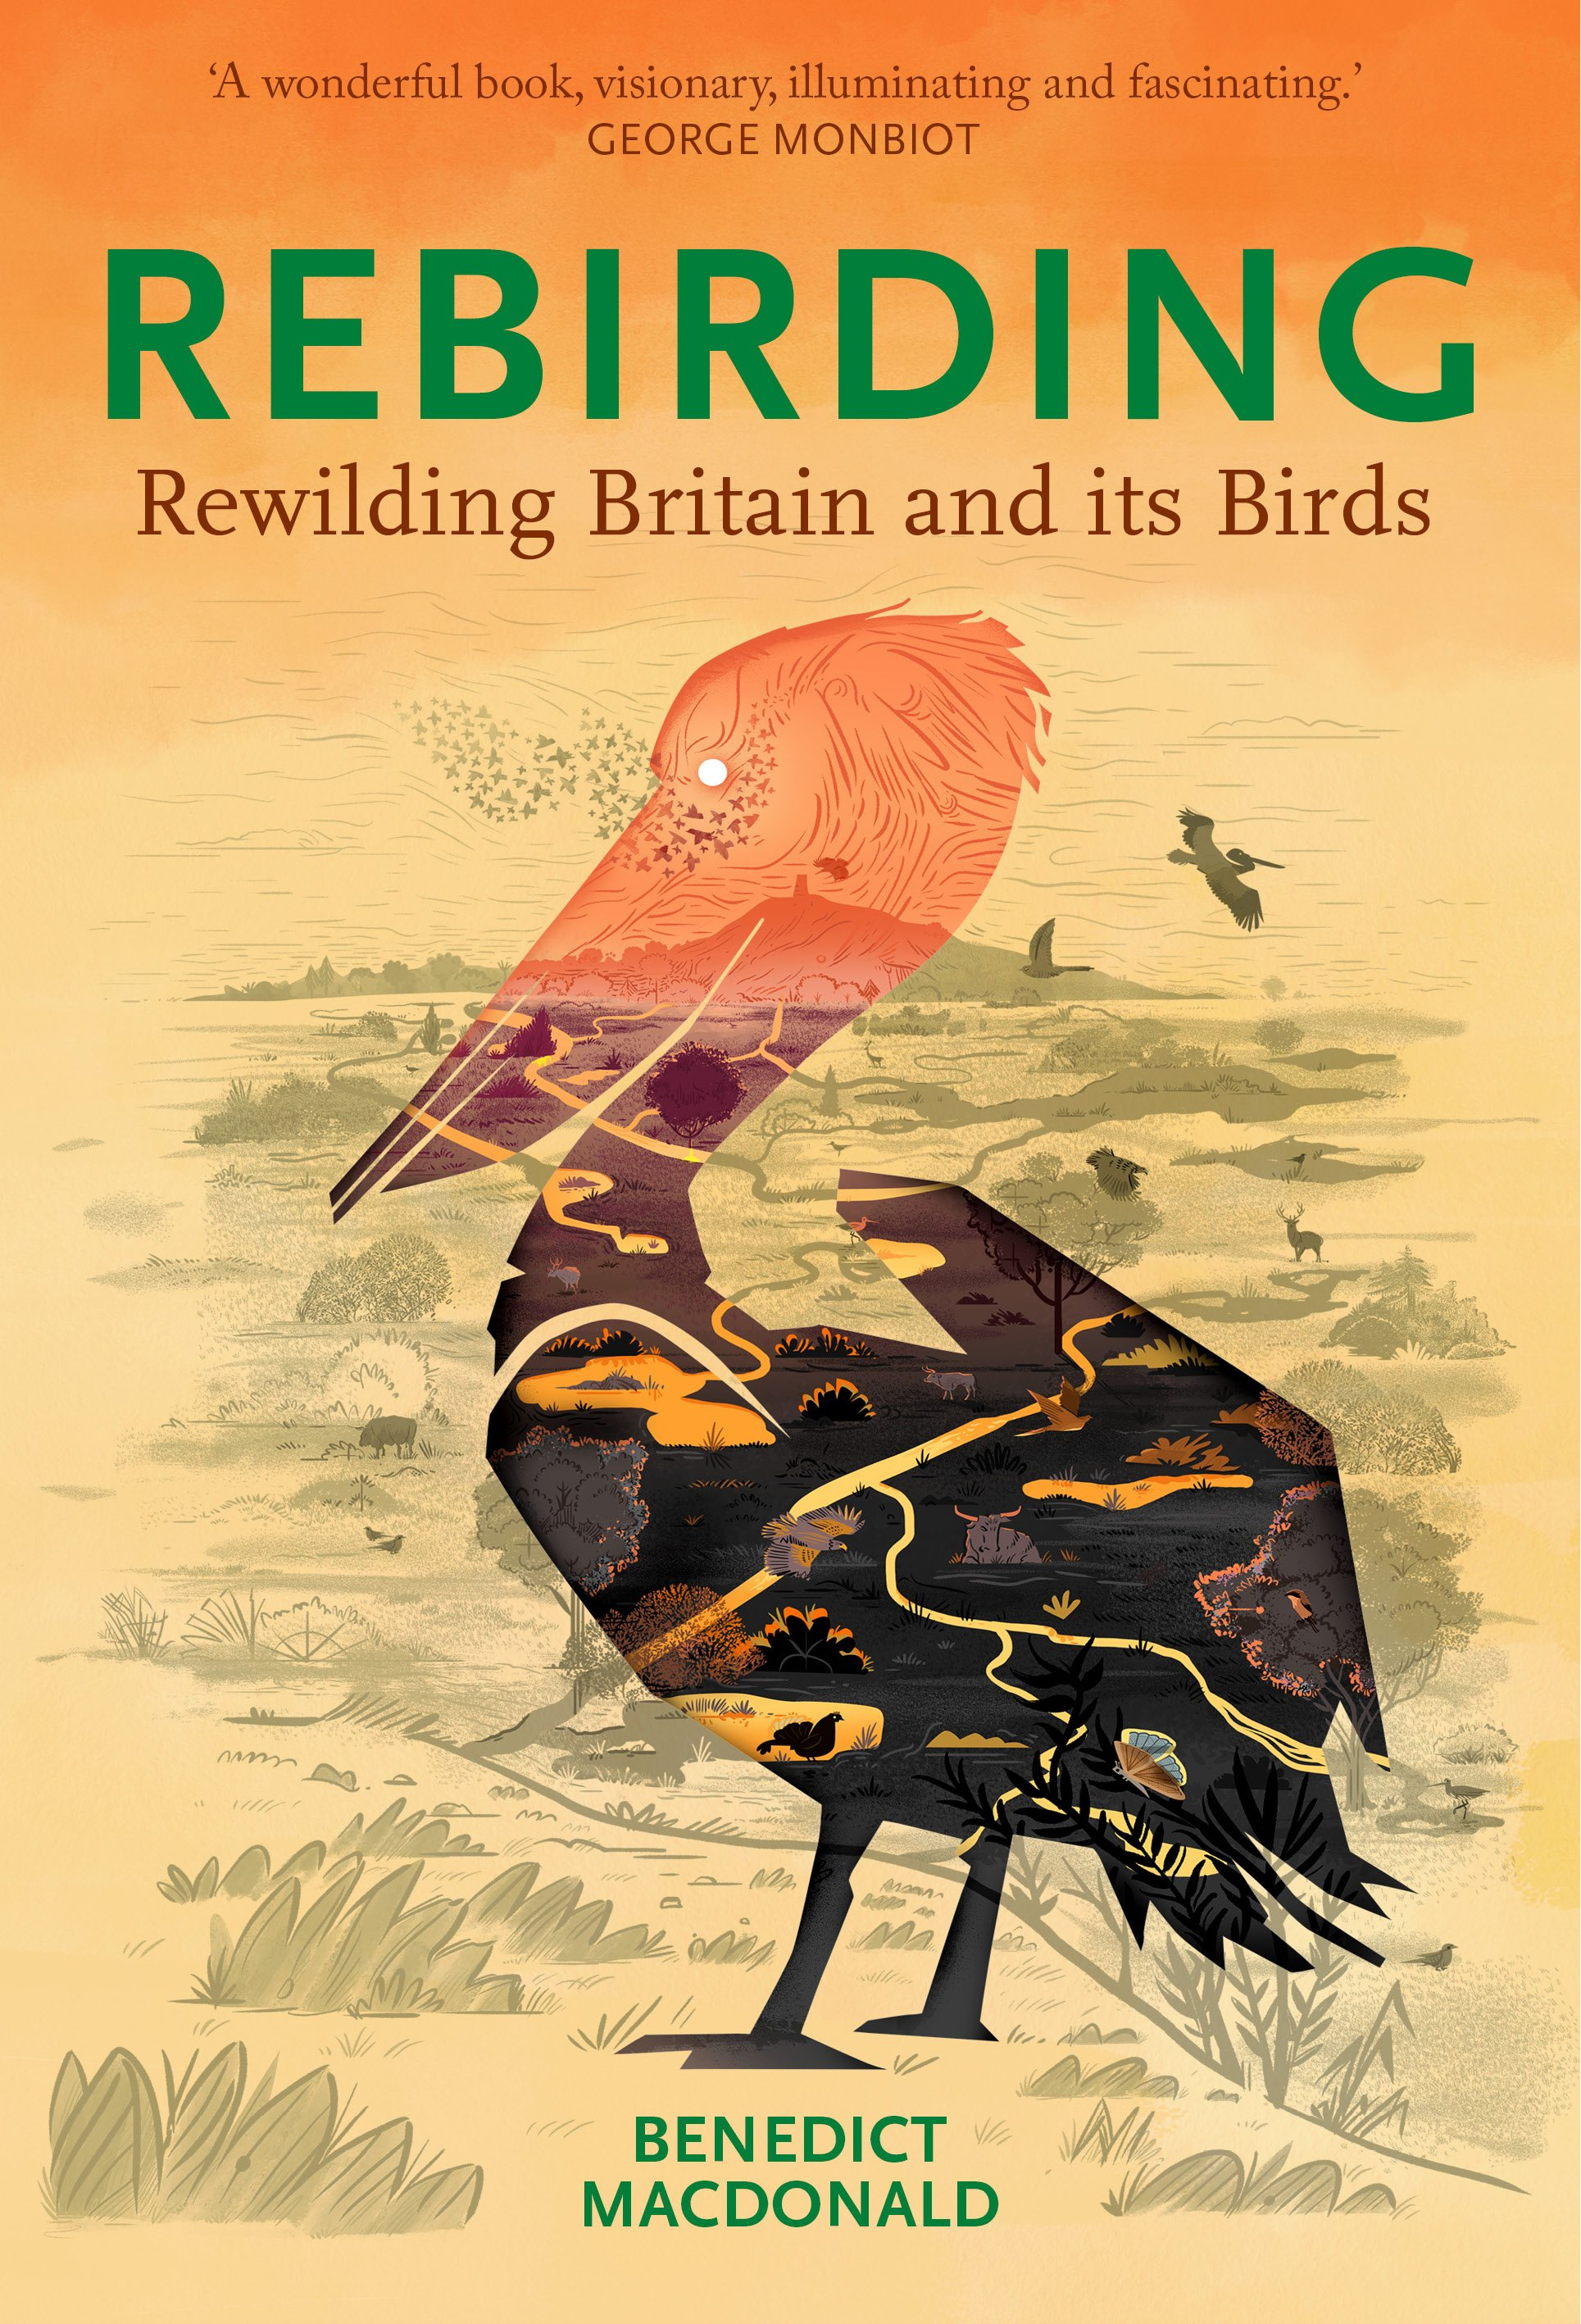 Rebirding_-_Rewilding_Britain_and_its_Birds_-_Macdonald_-_front_cover